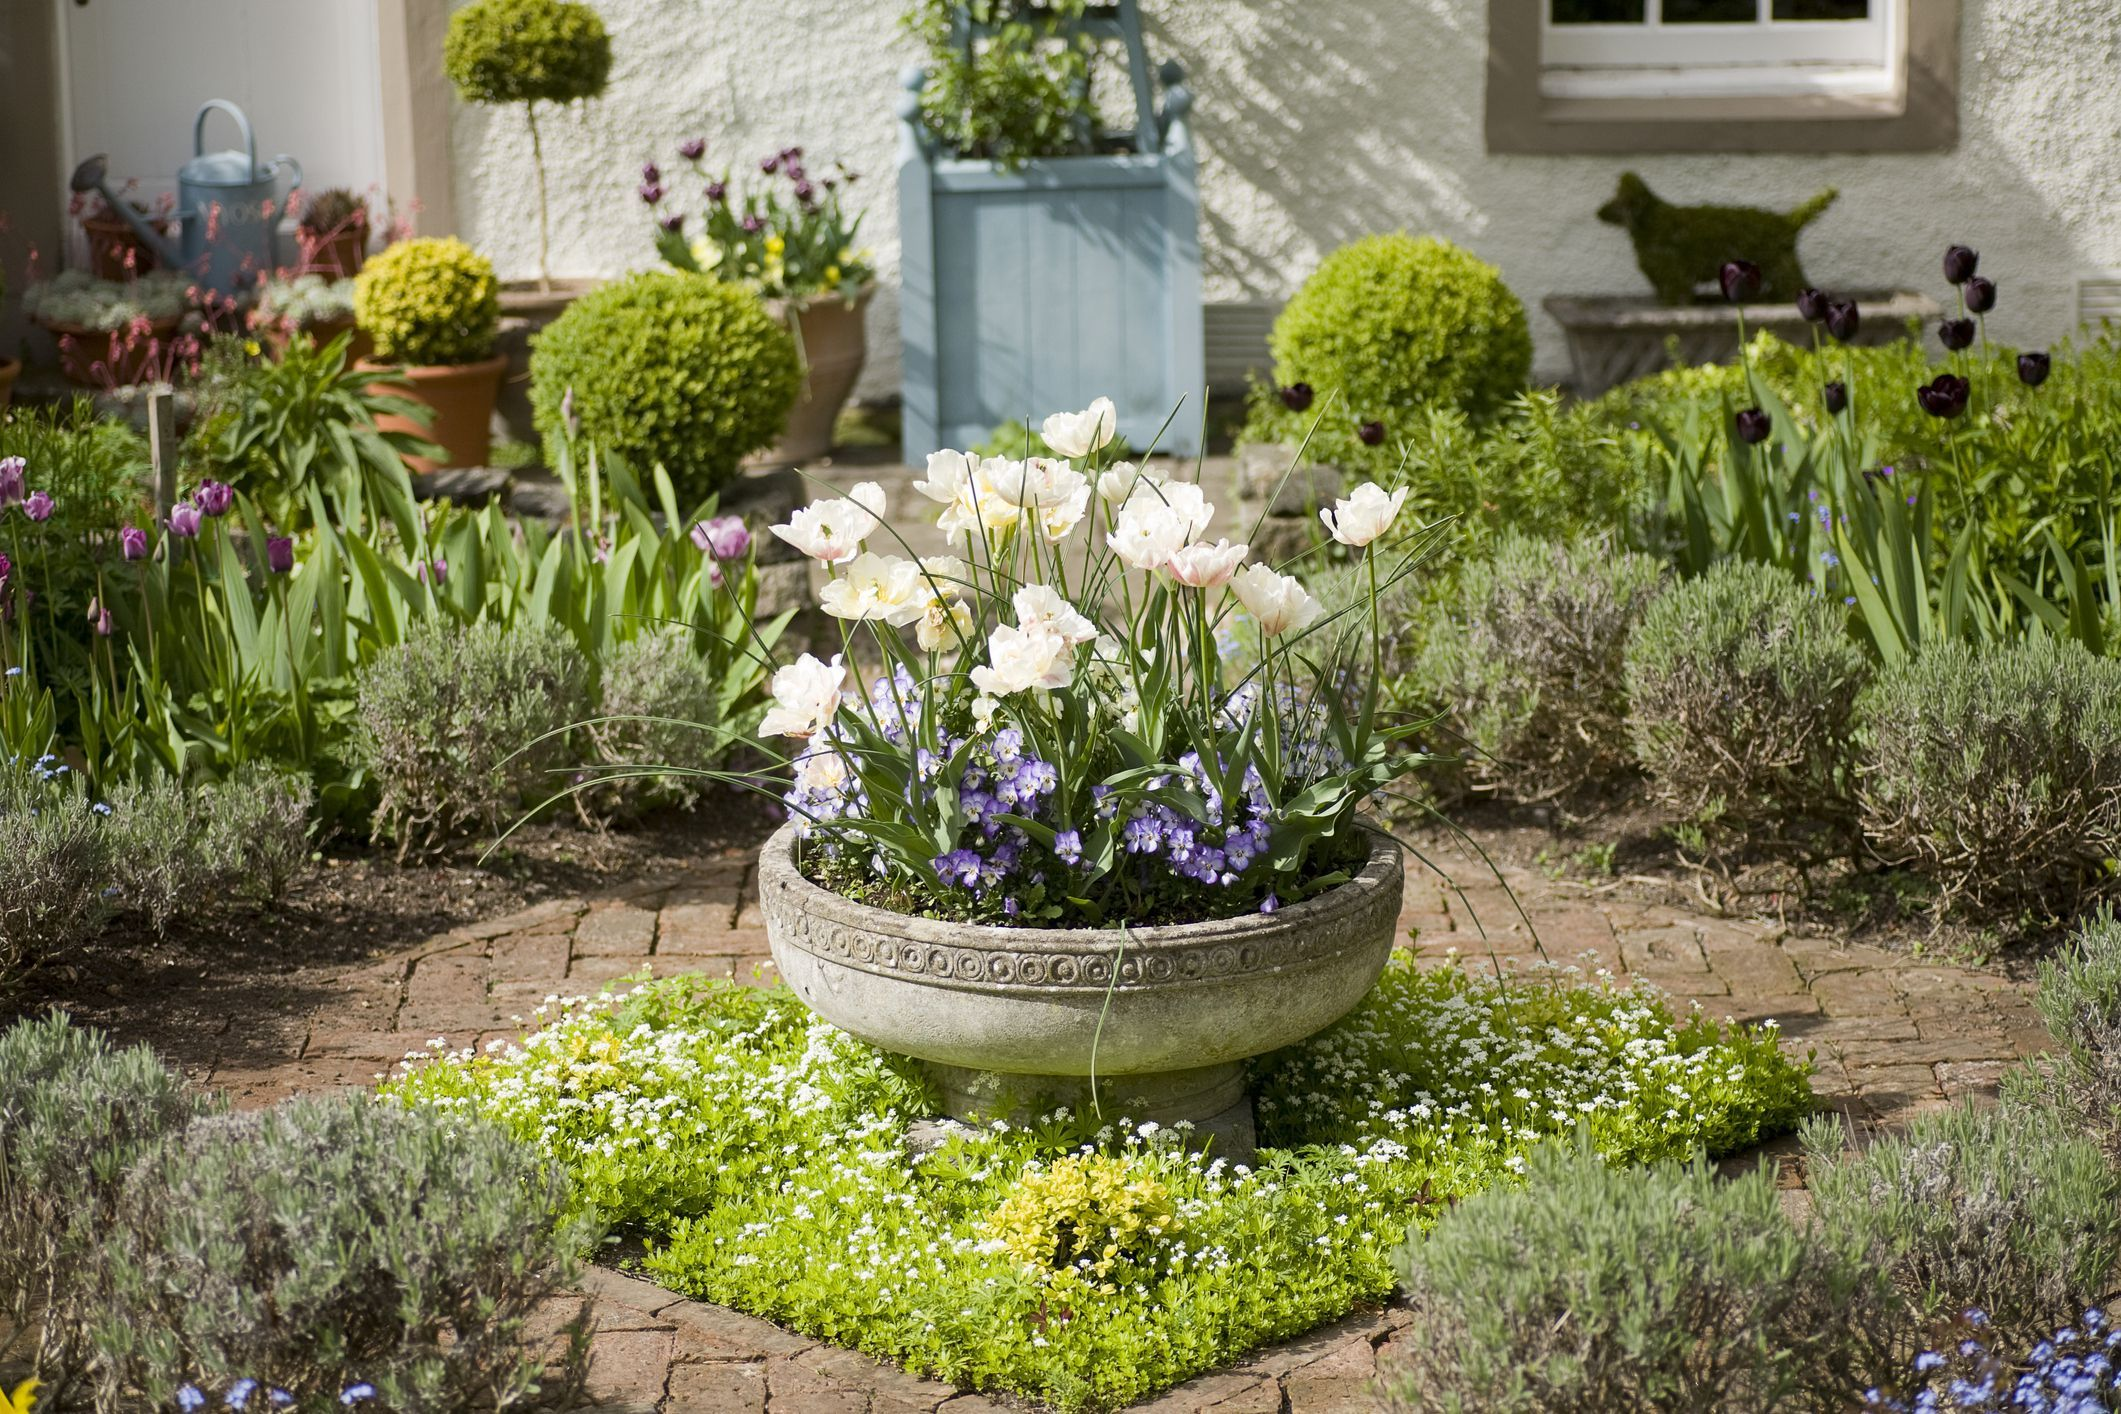 The Rich brothers reveal their top gardening trends for 9